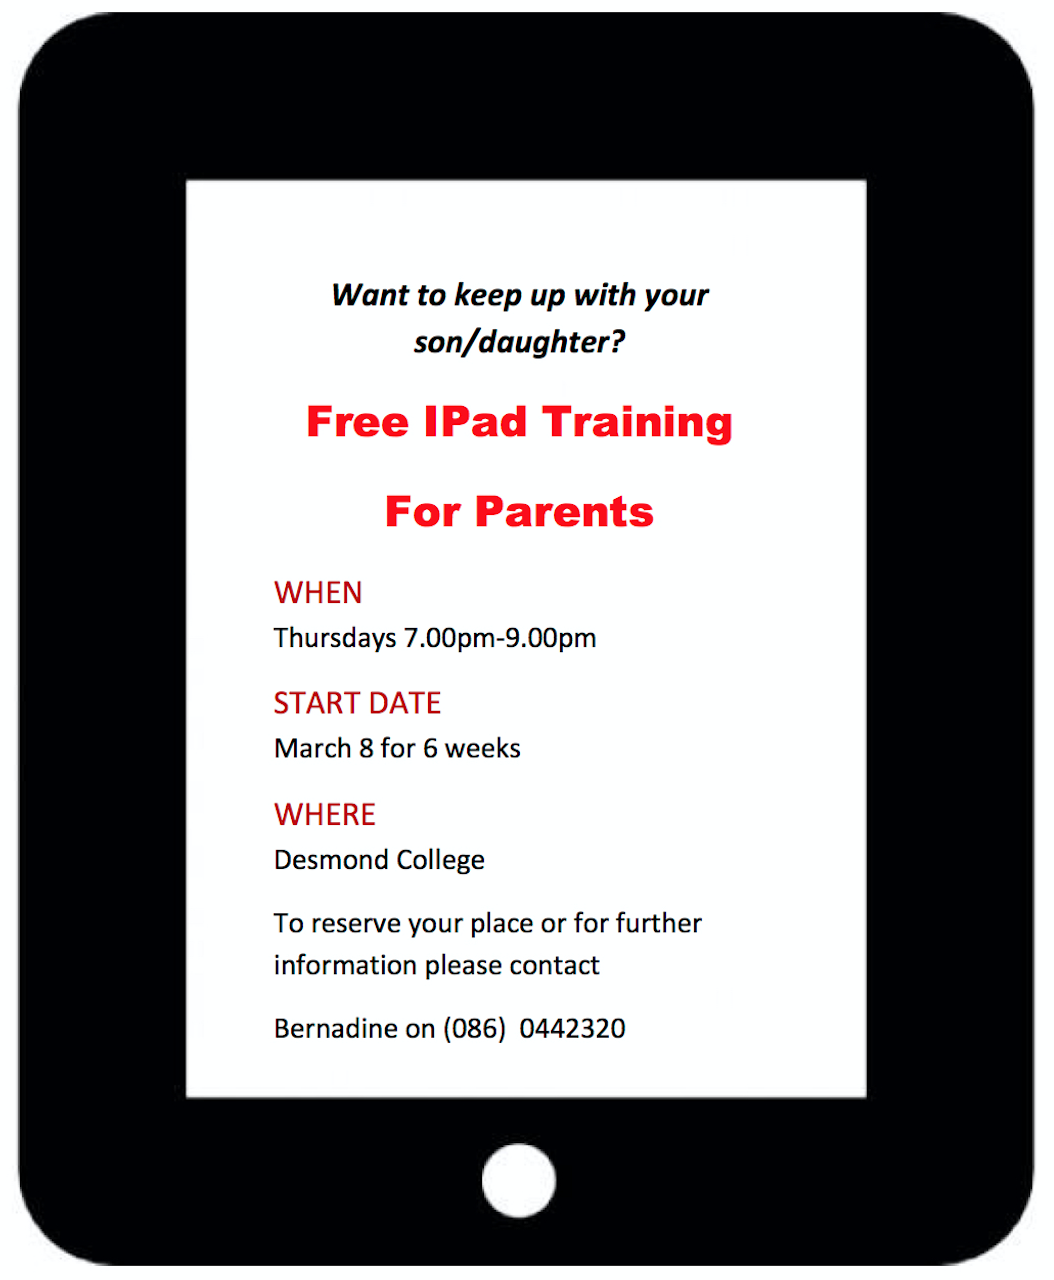 Free iPad Training for Parents: Thursdays 7-9pm March 8th 2018 for 6 Weeks in Desmond College. Contact Bernadine on 0860442320